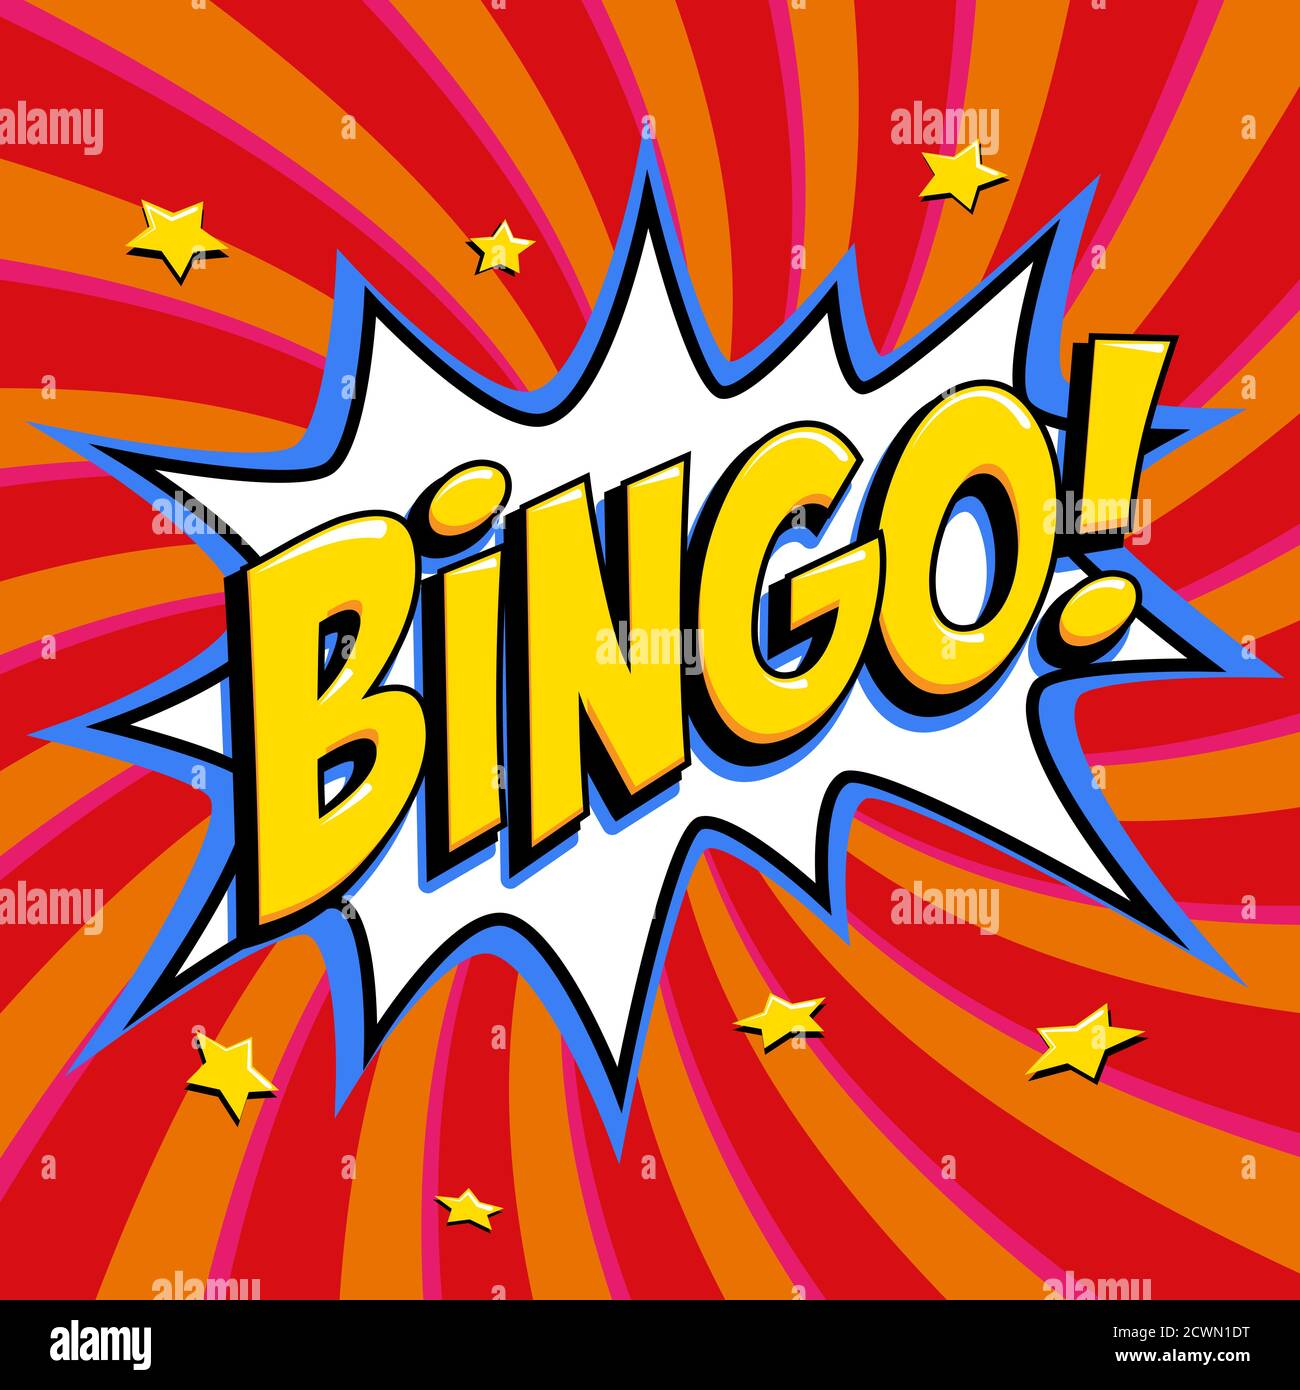 Bingo Poster High Resolution Stock Photography and Images   Alamy